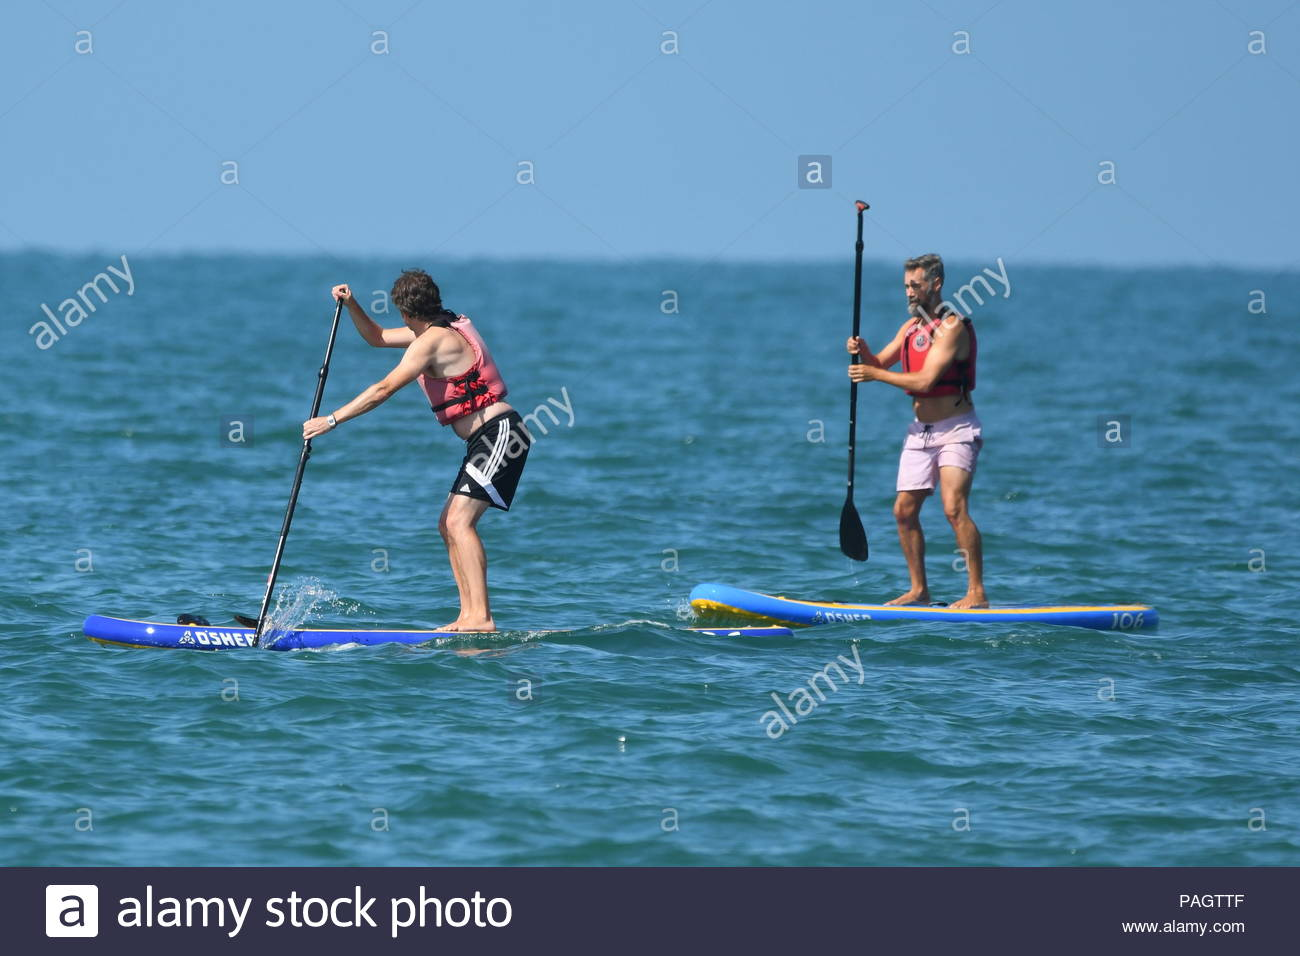 A couple of people using paddleboards in the July 2018 heatwave in England, UK. Paddleboards. Paddle boards. Paddle board. Paddleboarding. Paddleboarders. - Stock Image